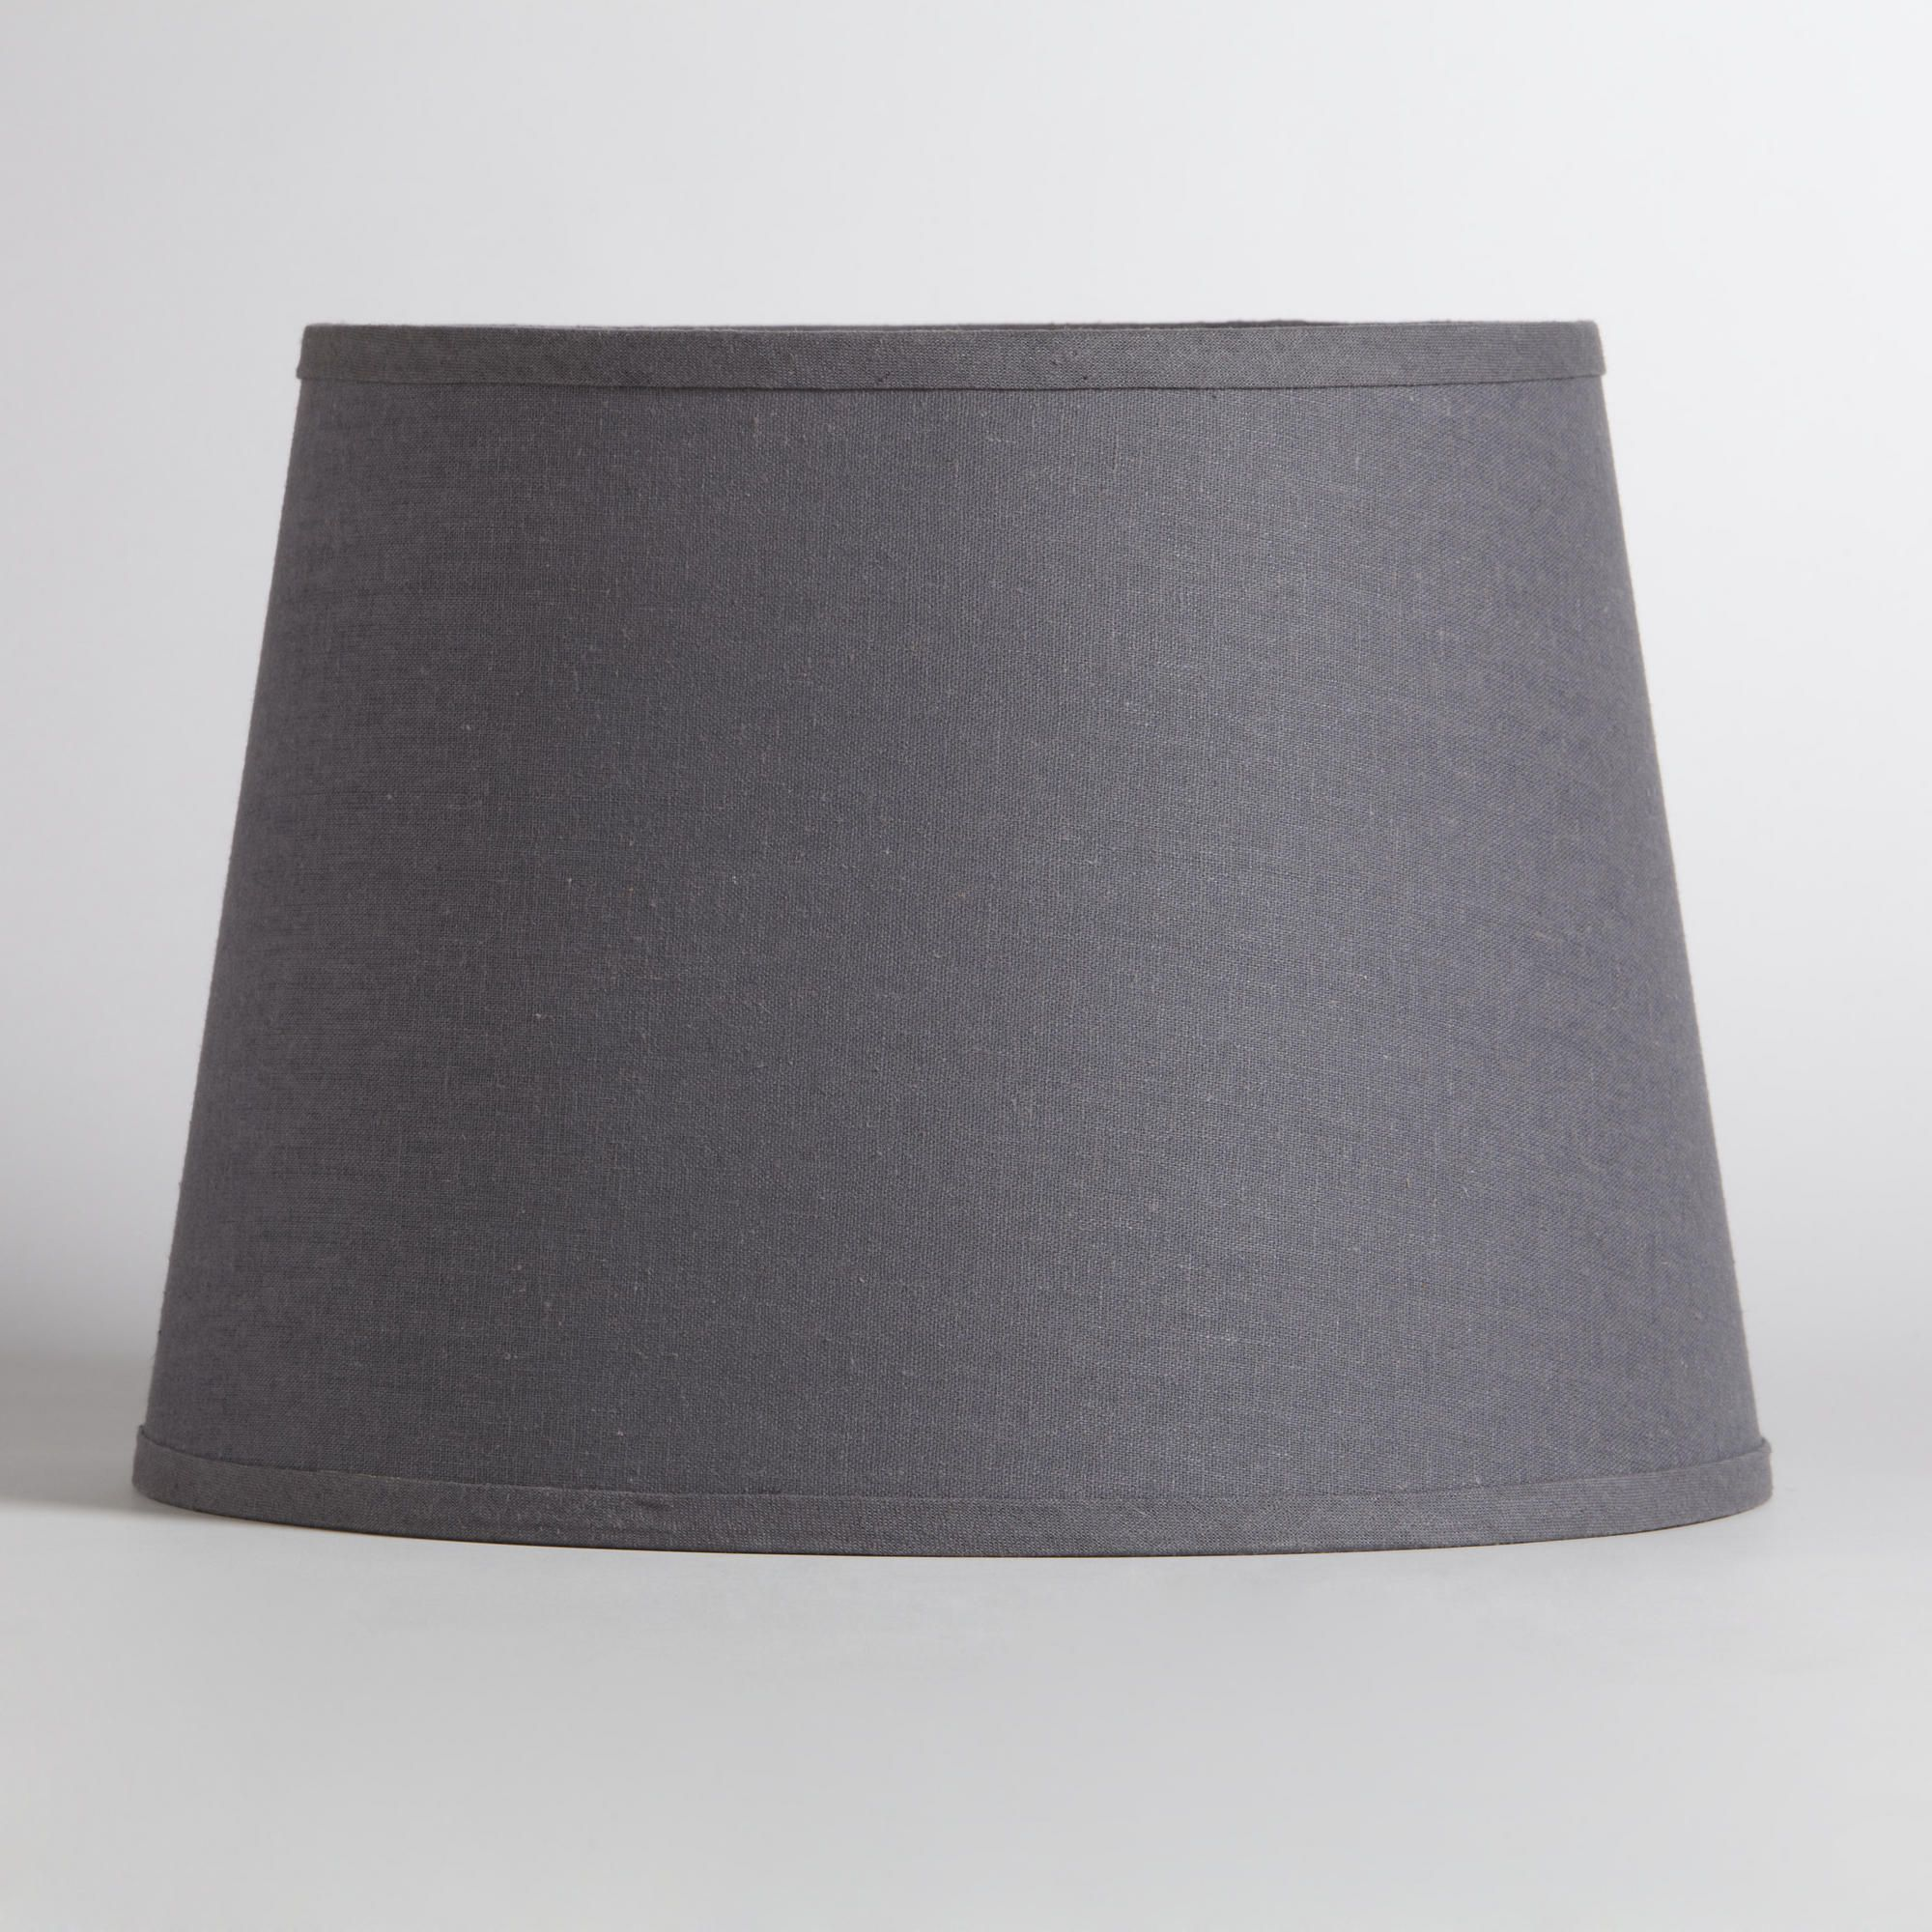 Gray cotton linen table lamp shade world market for holly gray cotton linen table lamp shade world market geotapseo Image collections